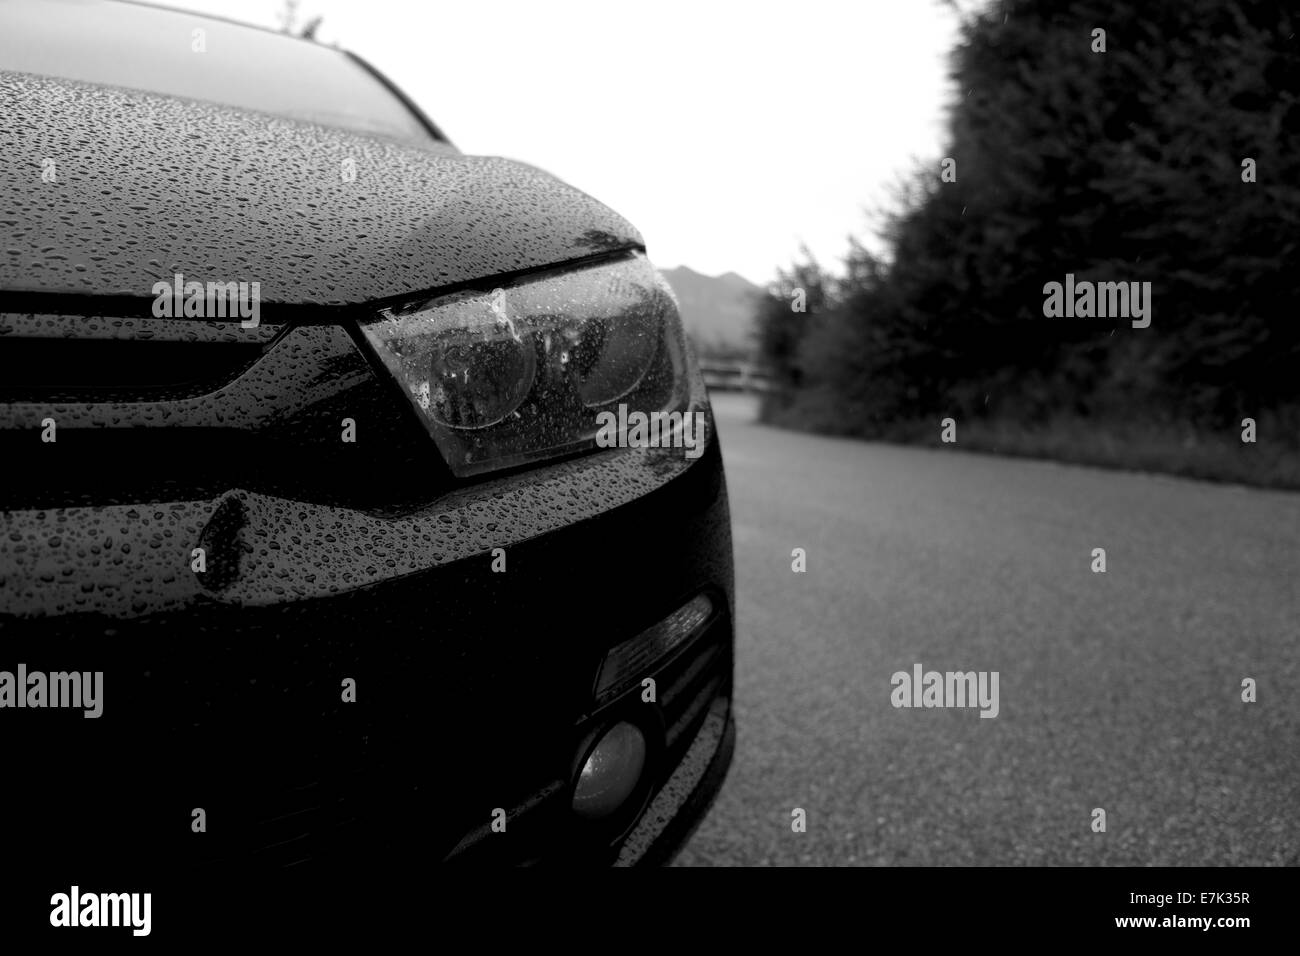 Close-up of black VW Scirocco under the rain - Stock Image